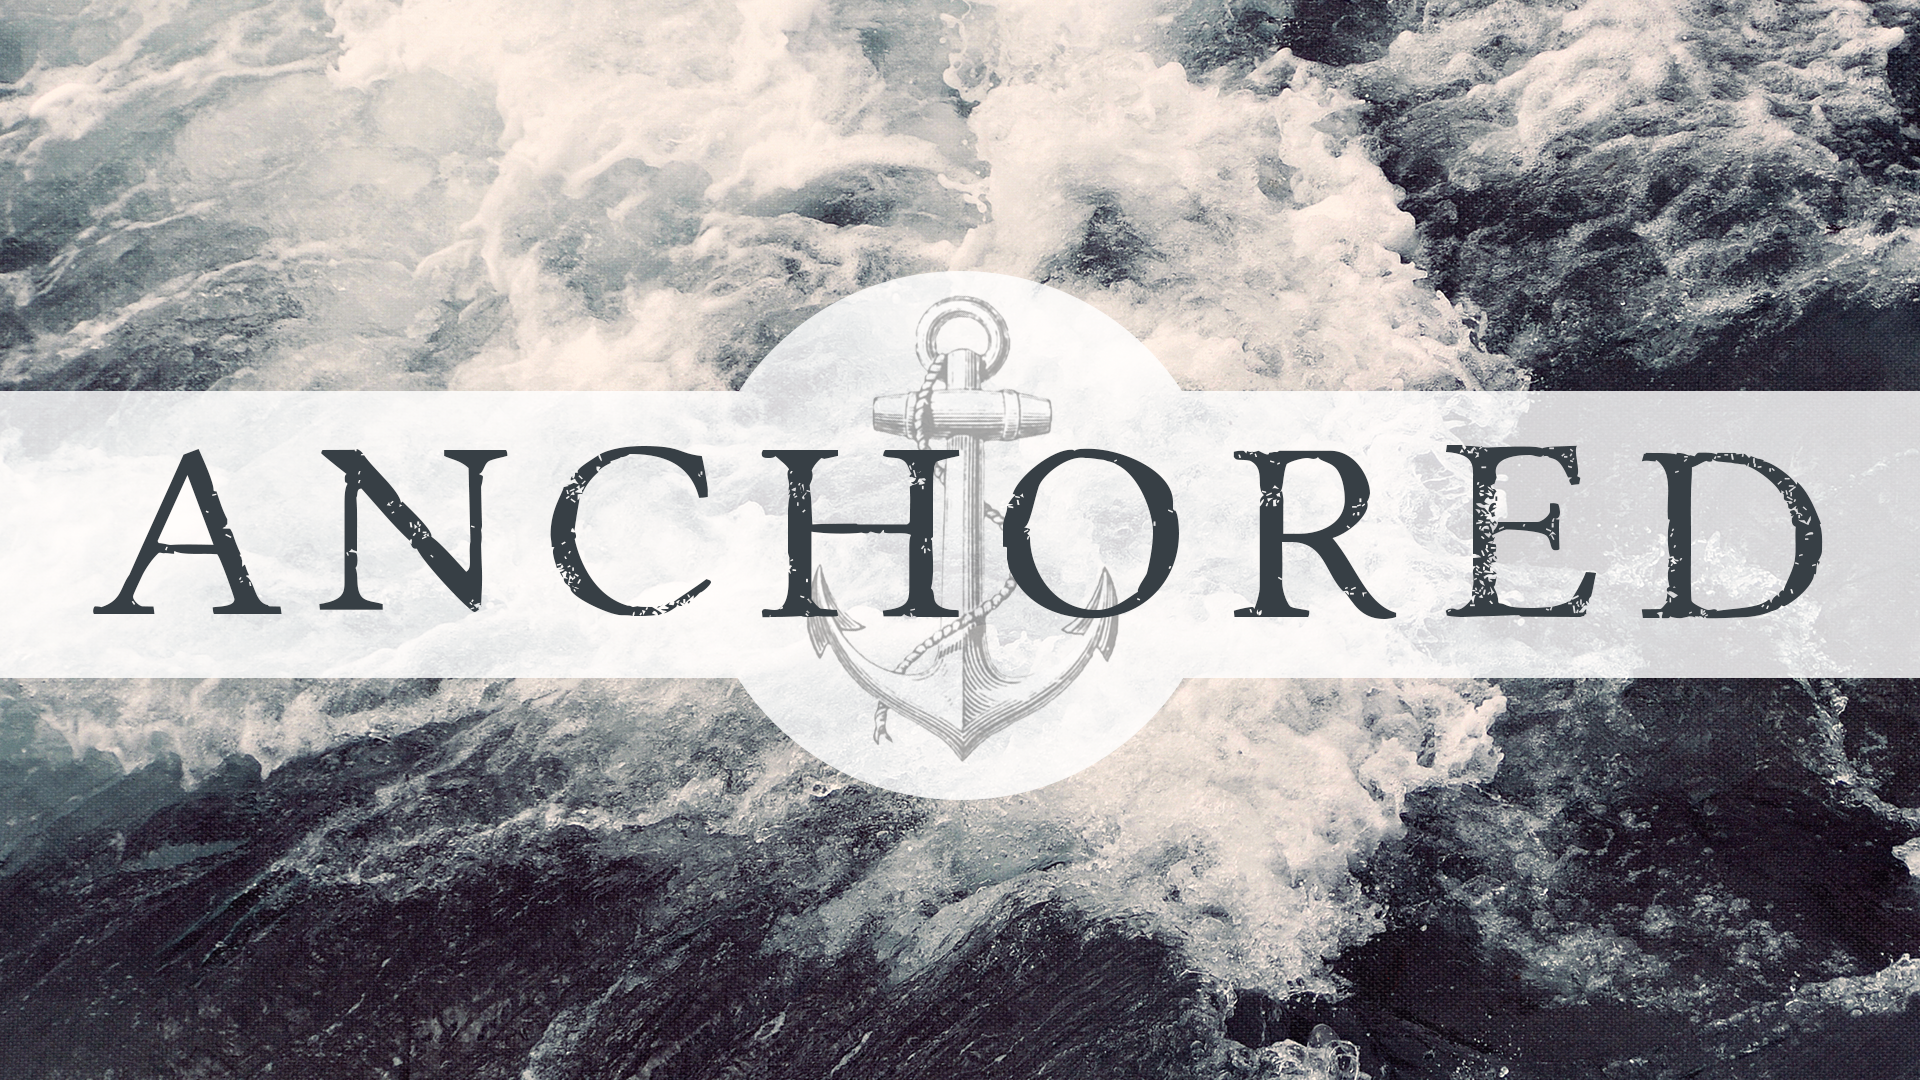 Anchored2.png